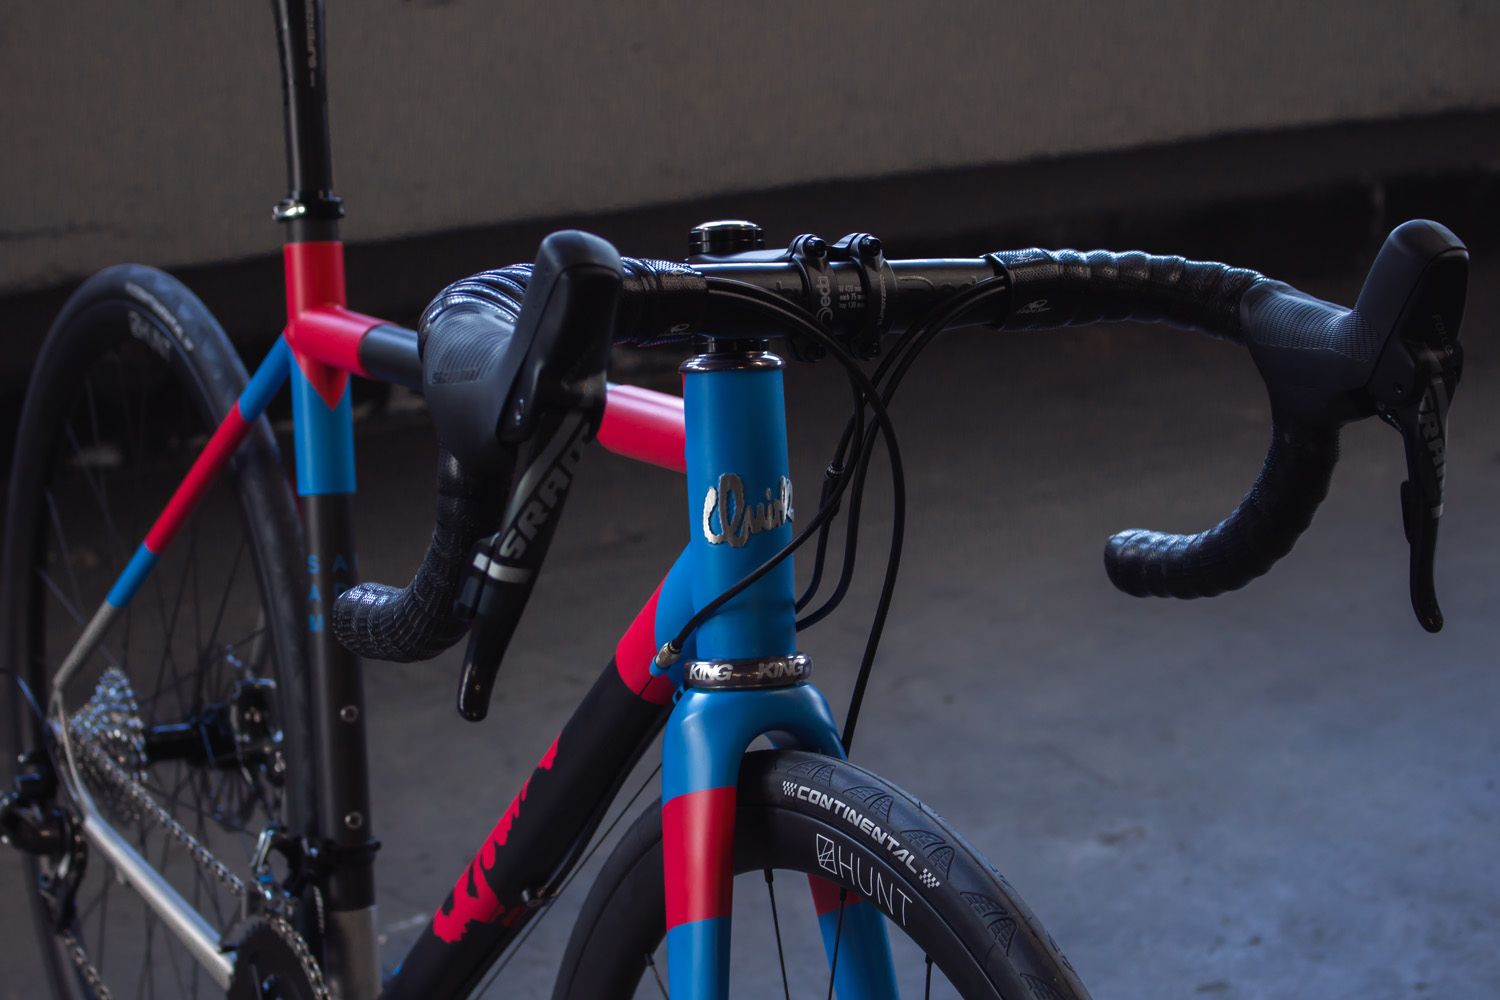 quirk_cycles_stainless_carbon_climber_road_JPEG_0004.jpg